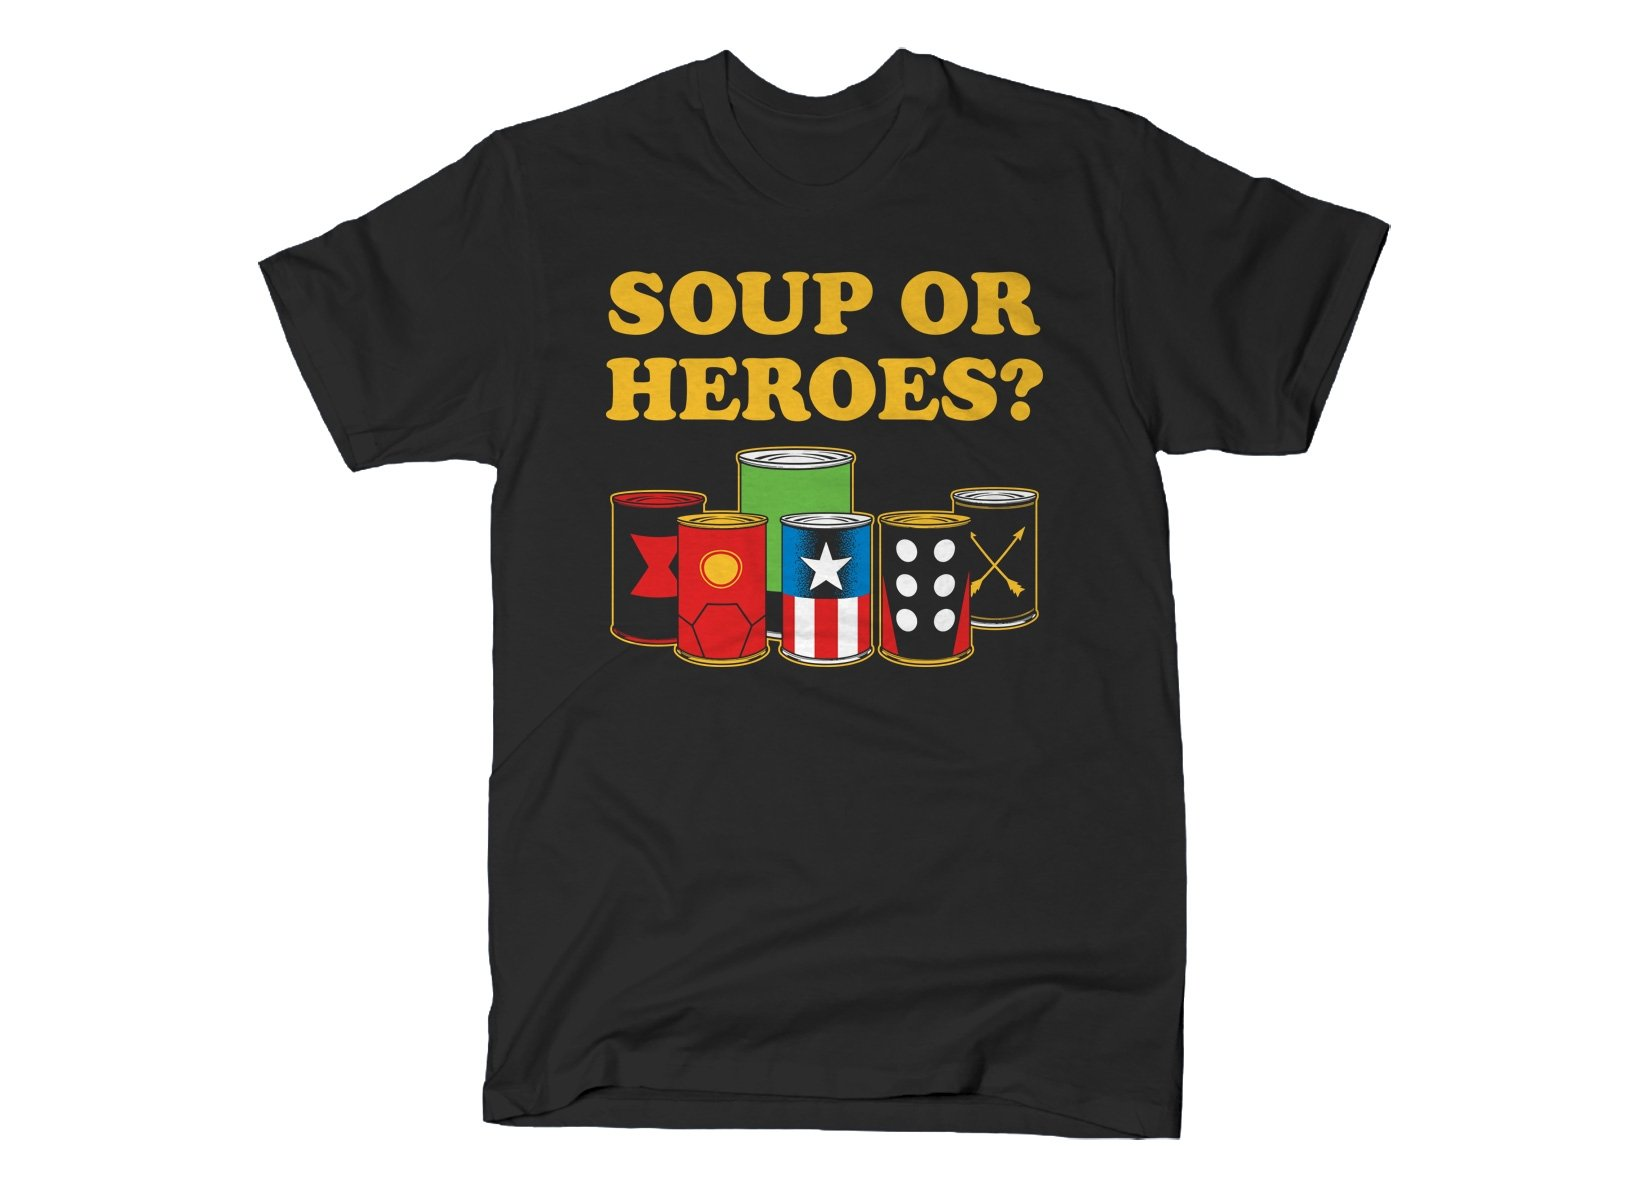 Soup Or Heroes? on Mens T-Shirt